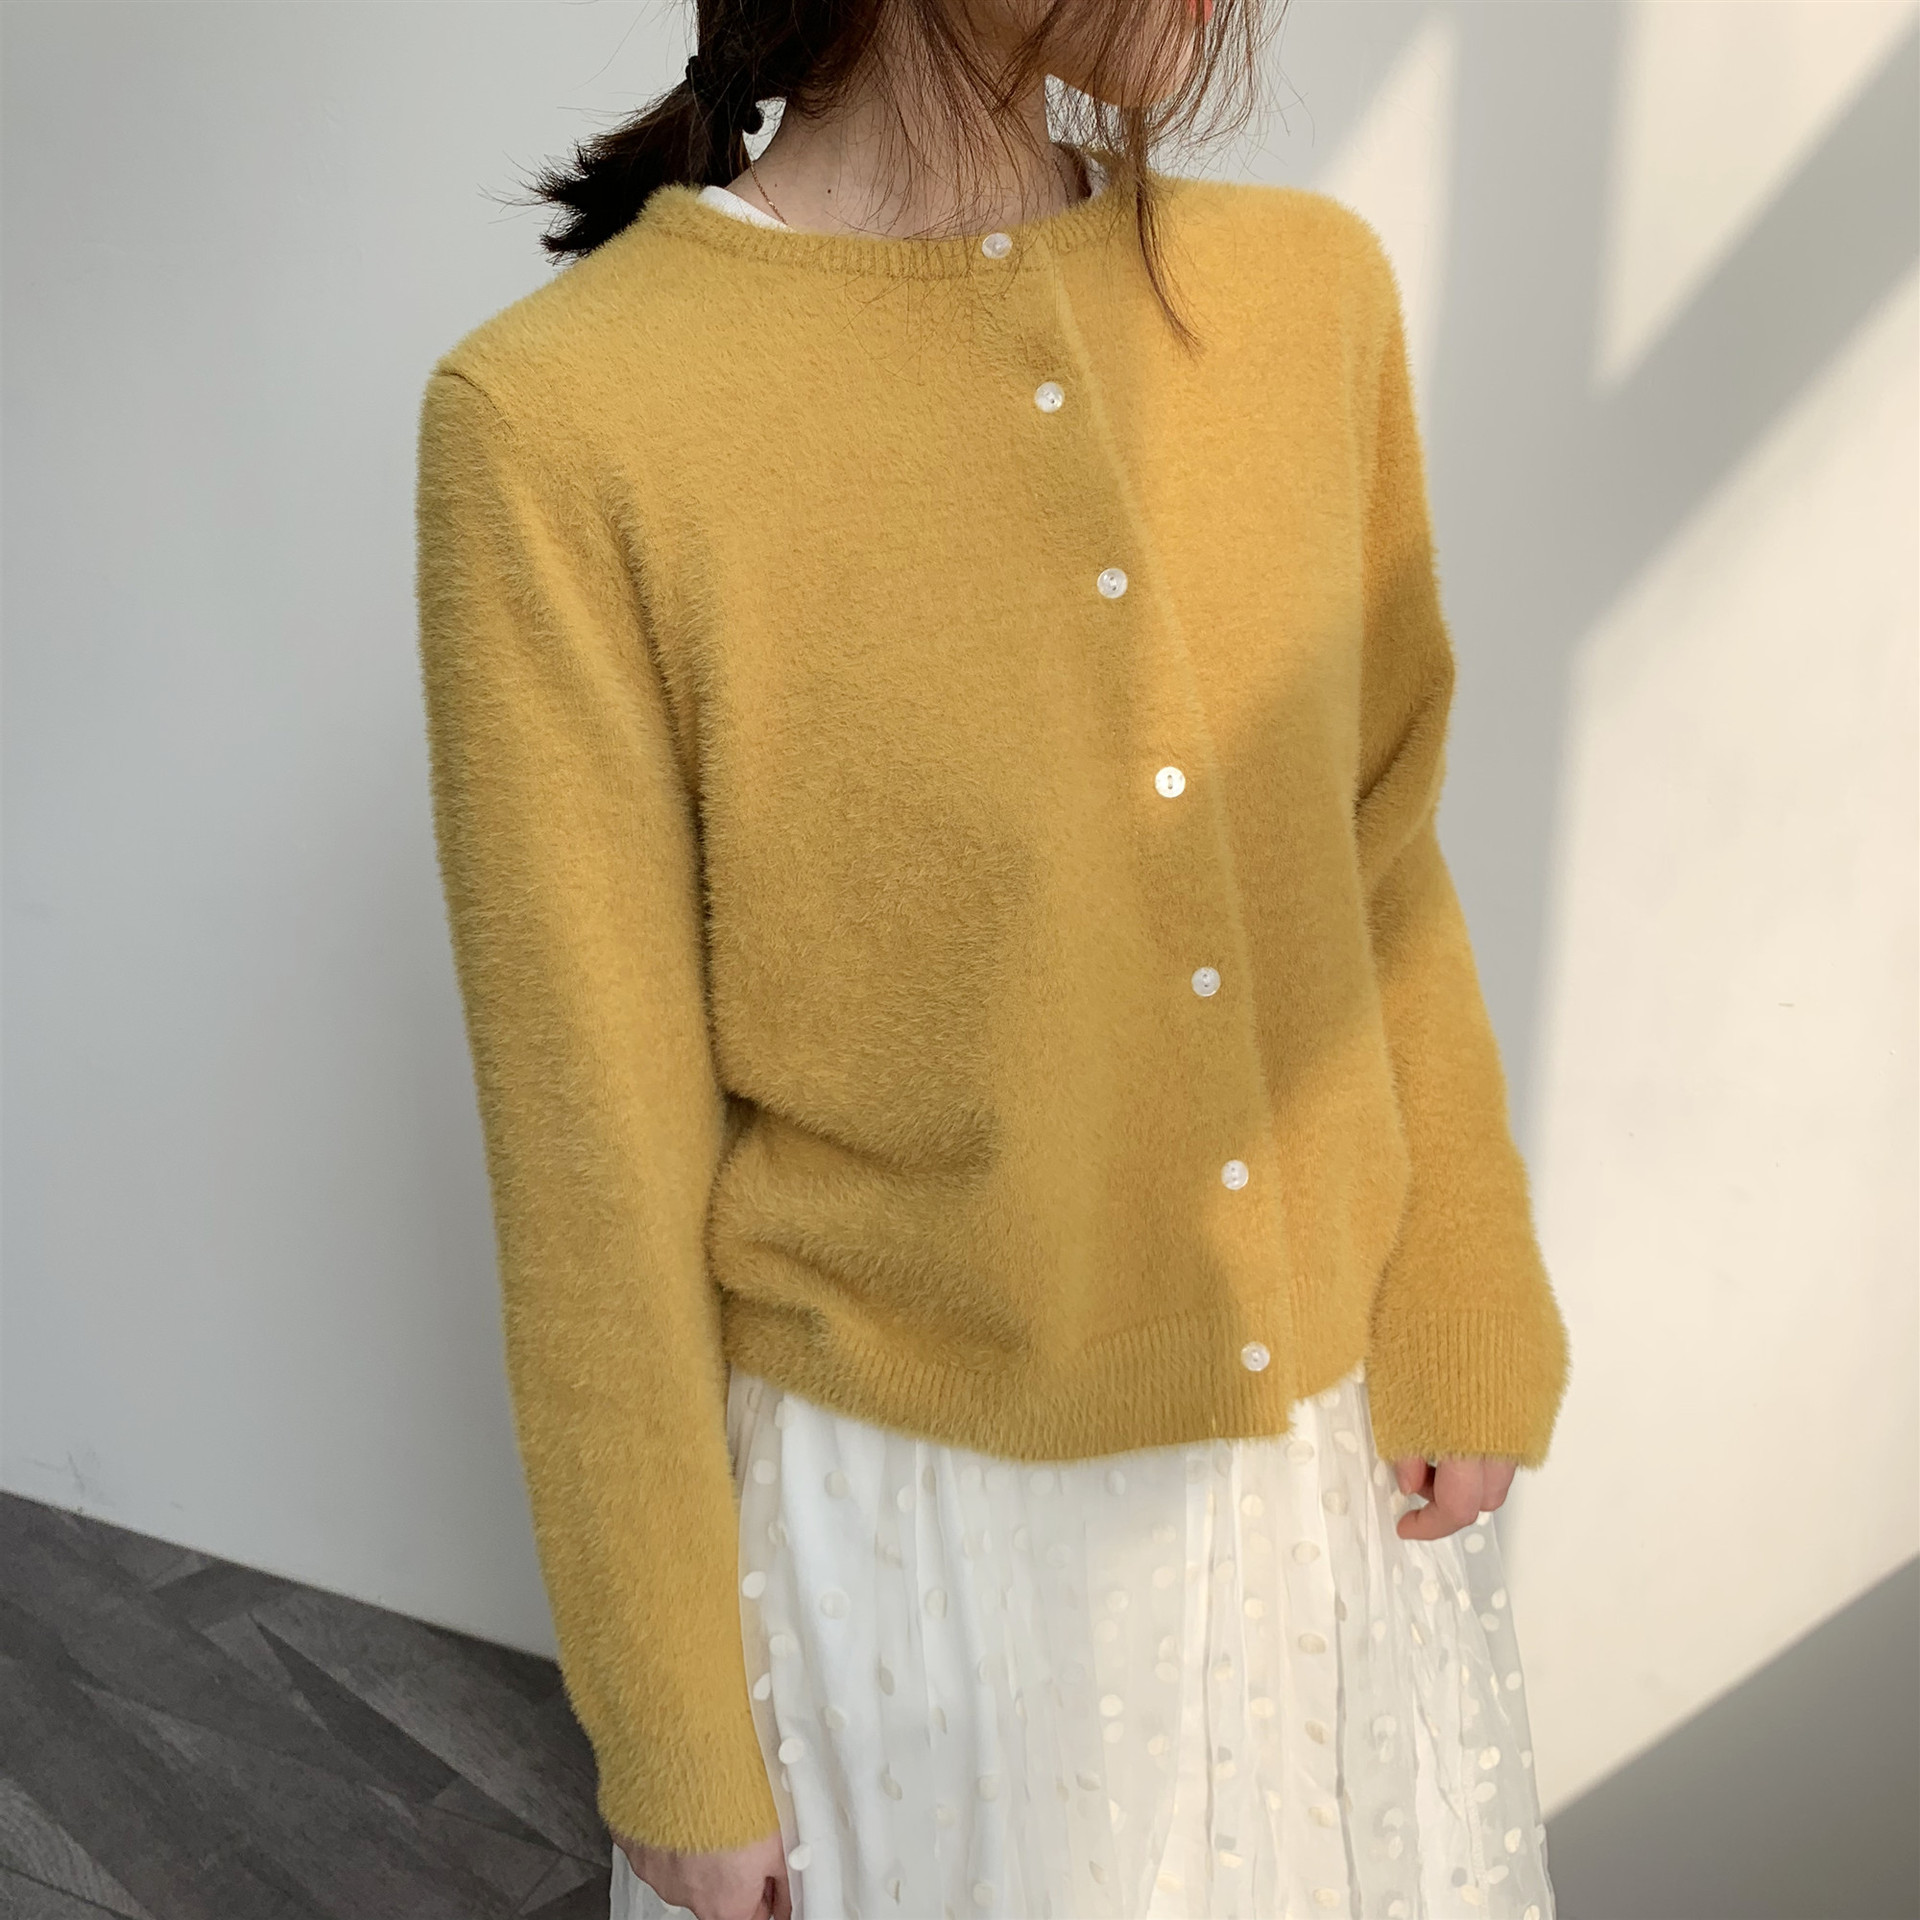 Autumn Winter New Korean Elegant Cardigan Women 2019 New Slim Yellow Sweater Long Sleeve Sweater Cardigan Warm Jumpers LT982S50(China)